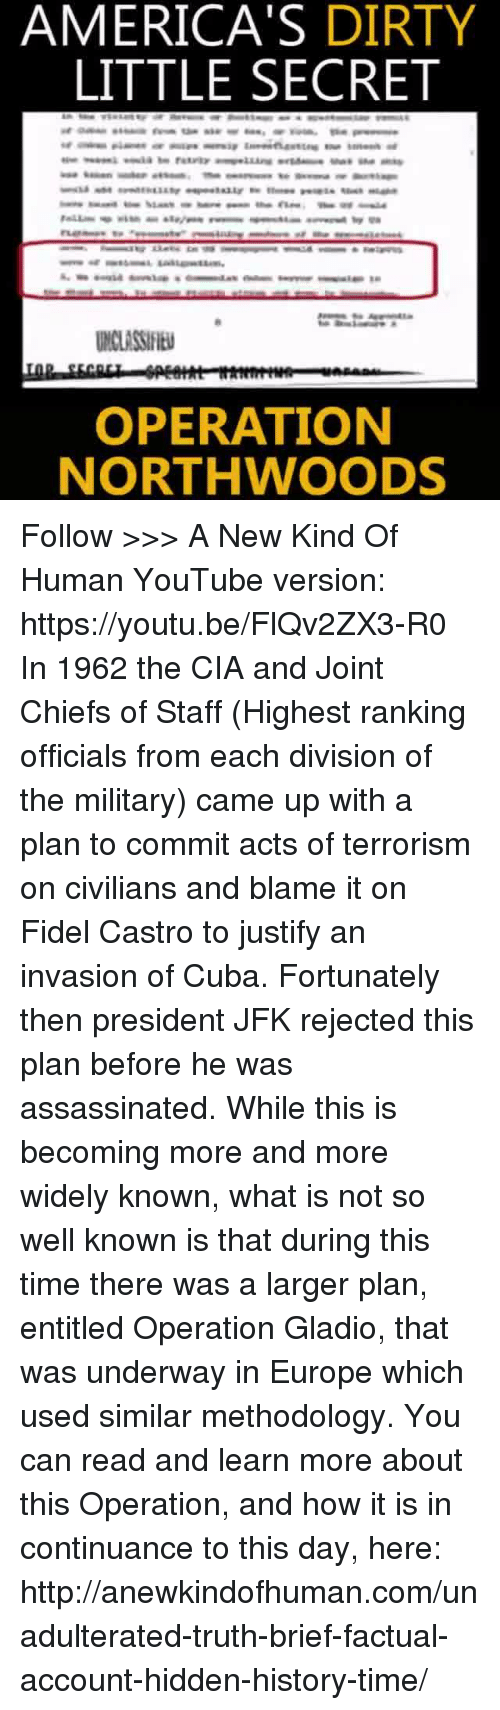 Fidel: AMERICA'S DIRTY  LITTLE SECRET  OPERATION  NORTHWOODS Follow >>> A New Kind Of Human YouTube version: https://youtu.be/FlQv2ZX3-R0   In 1962 the CIA and Joint Chiefs of Staff (Highest ranking officials from each division of the military) came up with a plan to commit acts of terrorism on civilians and blame it on Fidel Castro to justify an invasion of Cuba. Fortunately then president JFK rejected this plan before he was assassinated.  While this is becoming more and more widely known, what is not so well known is that during this time there was a larger plan, entitled Operation Gladio, that was underway in Europe which used similar methodology.  You can read and learn more about this Operation, and how it is in continuance to this day, here: http://anewkindofhuman.com/unadulterated-truth-brief-factual-account-hidden-history-time/